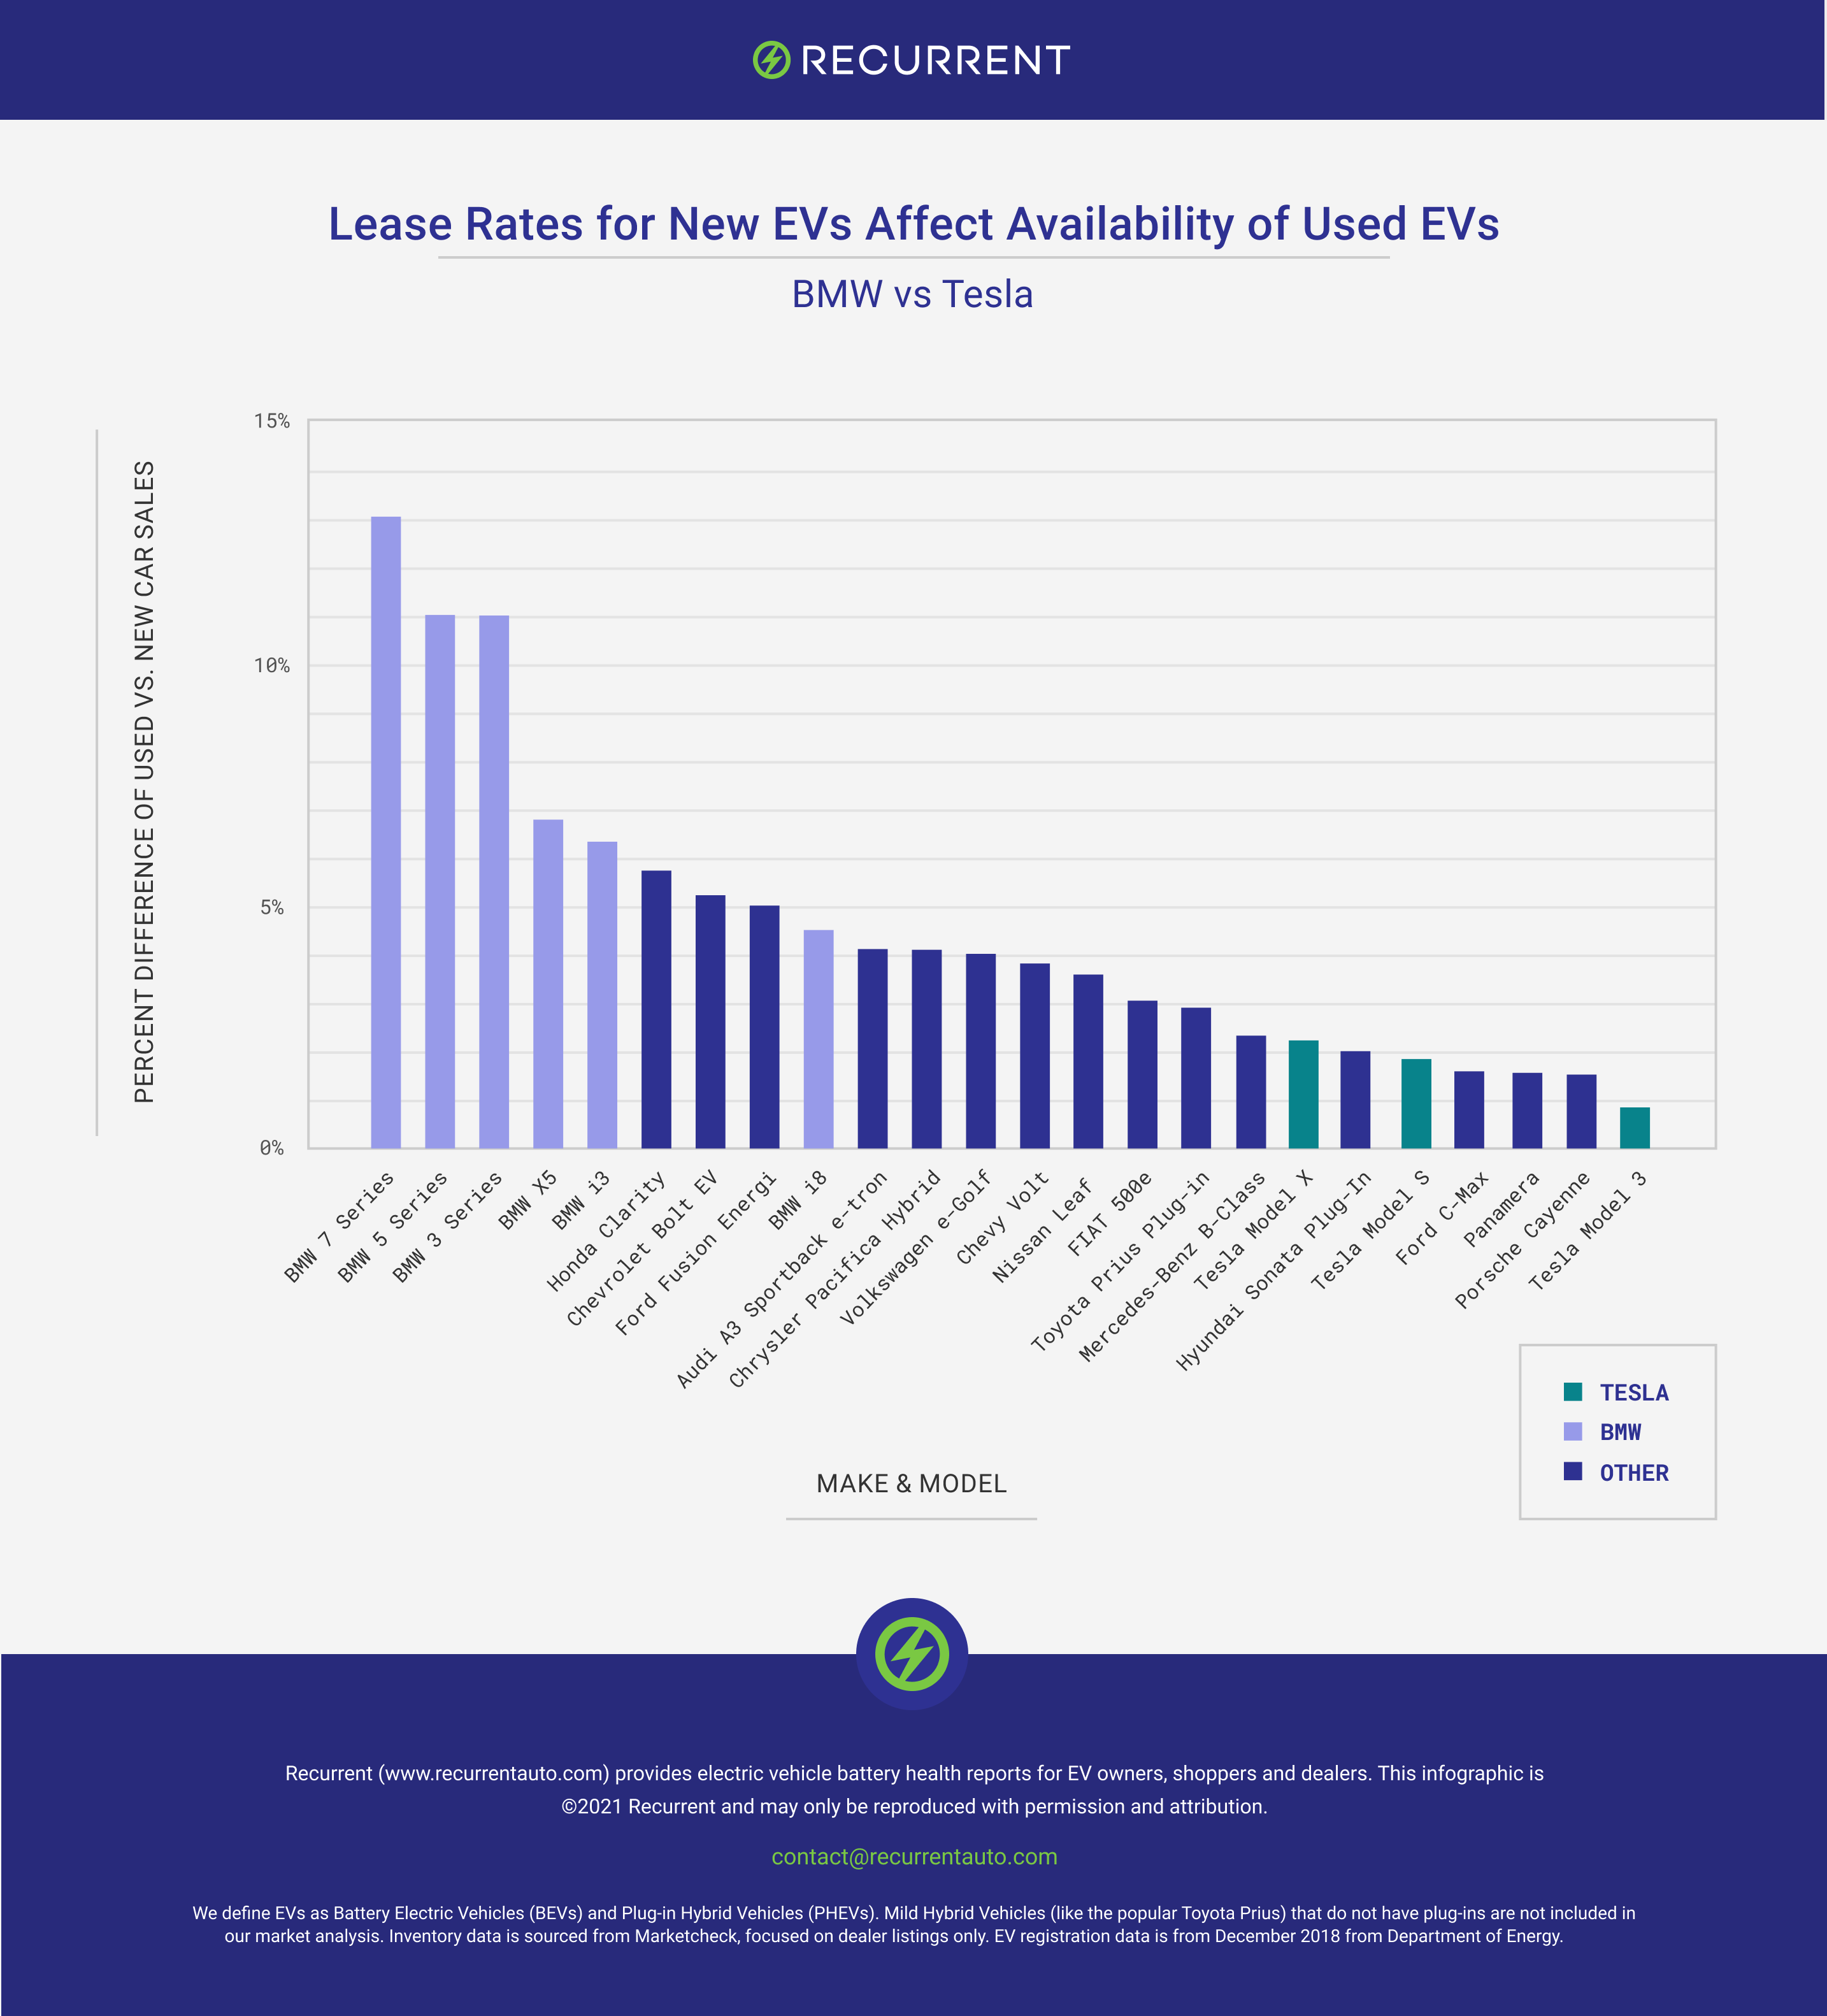 How lease rates affect used EV availability